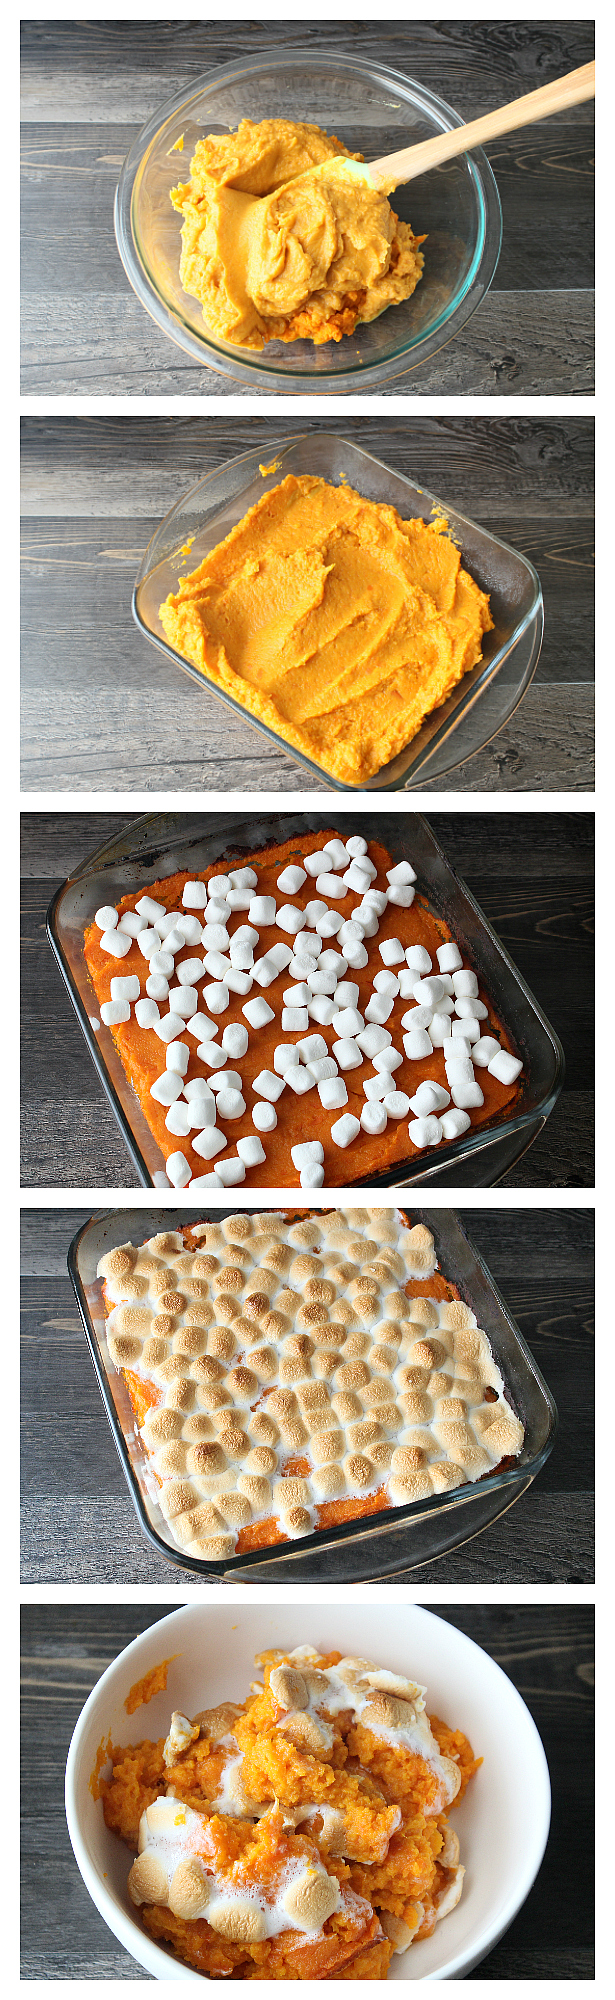 Weight Watchers sweet potato casserole is a great healthy side dish recipe. You can make this delicious baked sweet potatoes recipe for holidays and more!